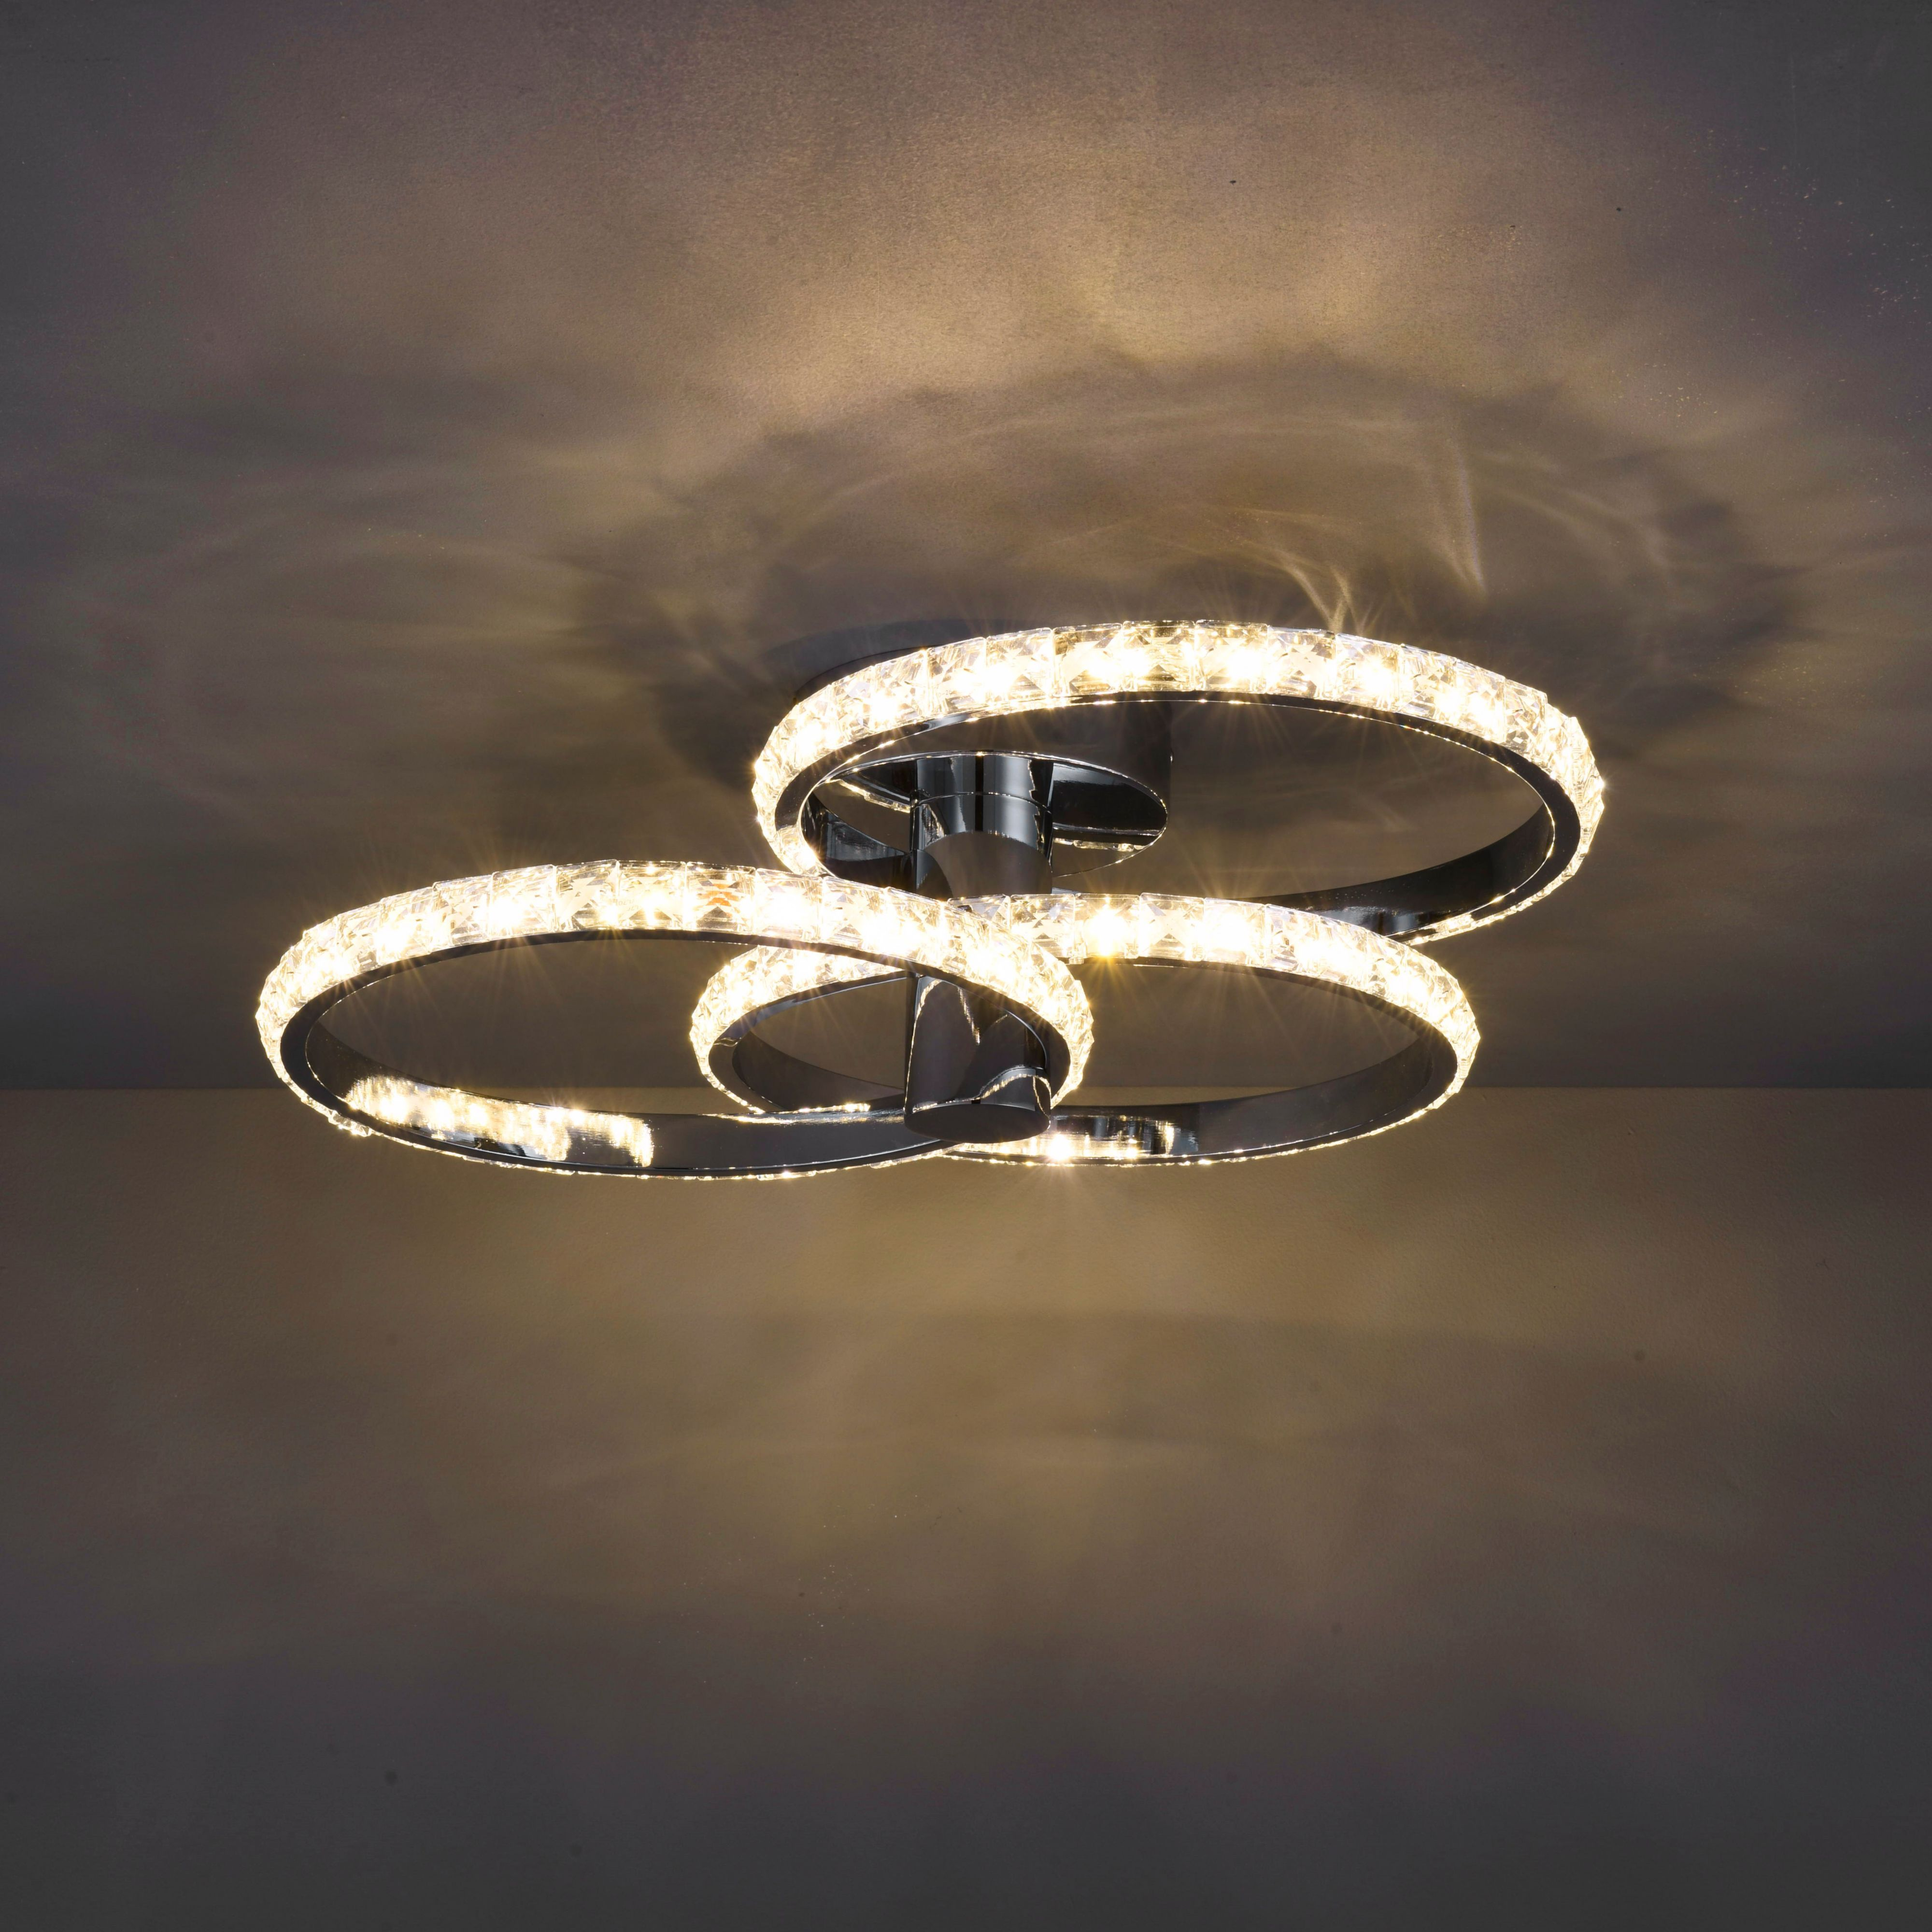 ceilings of lights lamp light size room living full fixtures table affordable storm hanging bedroom contemporary ceiling lighting kitchen modern